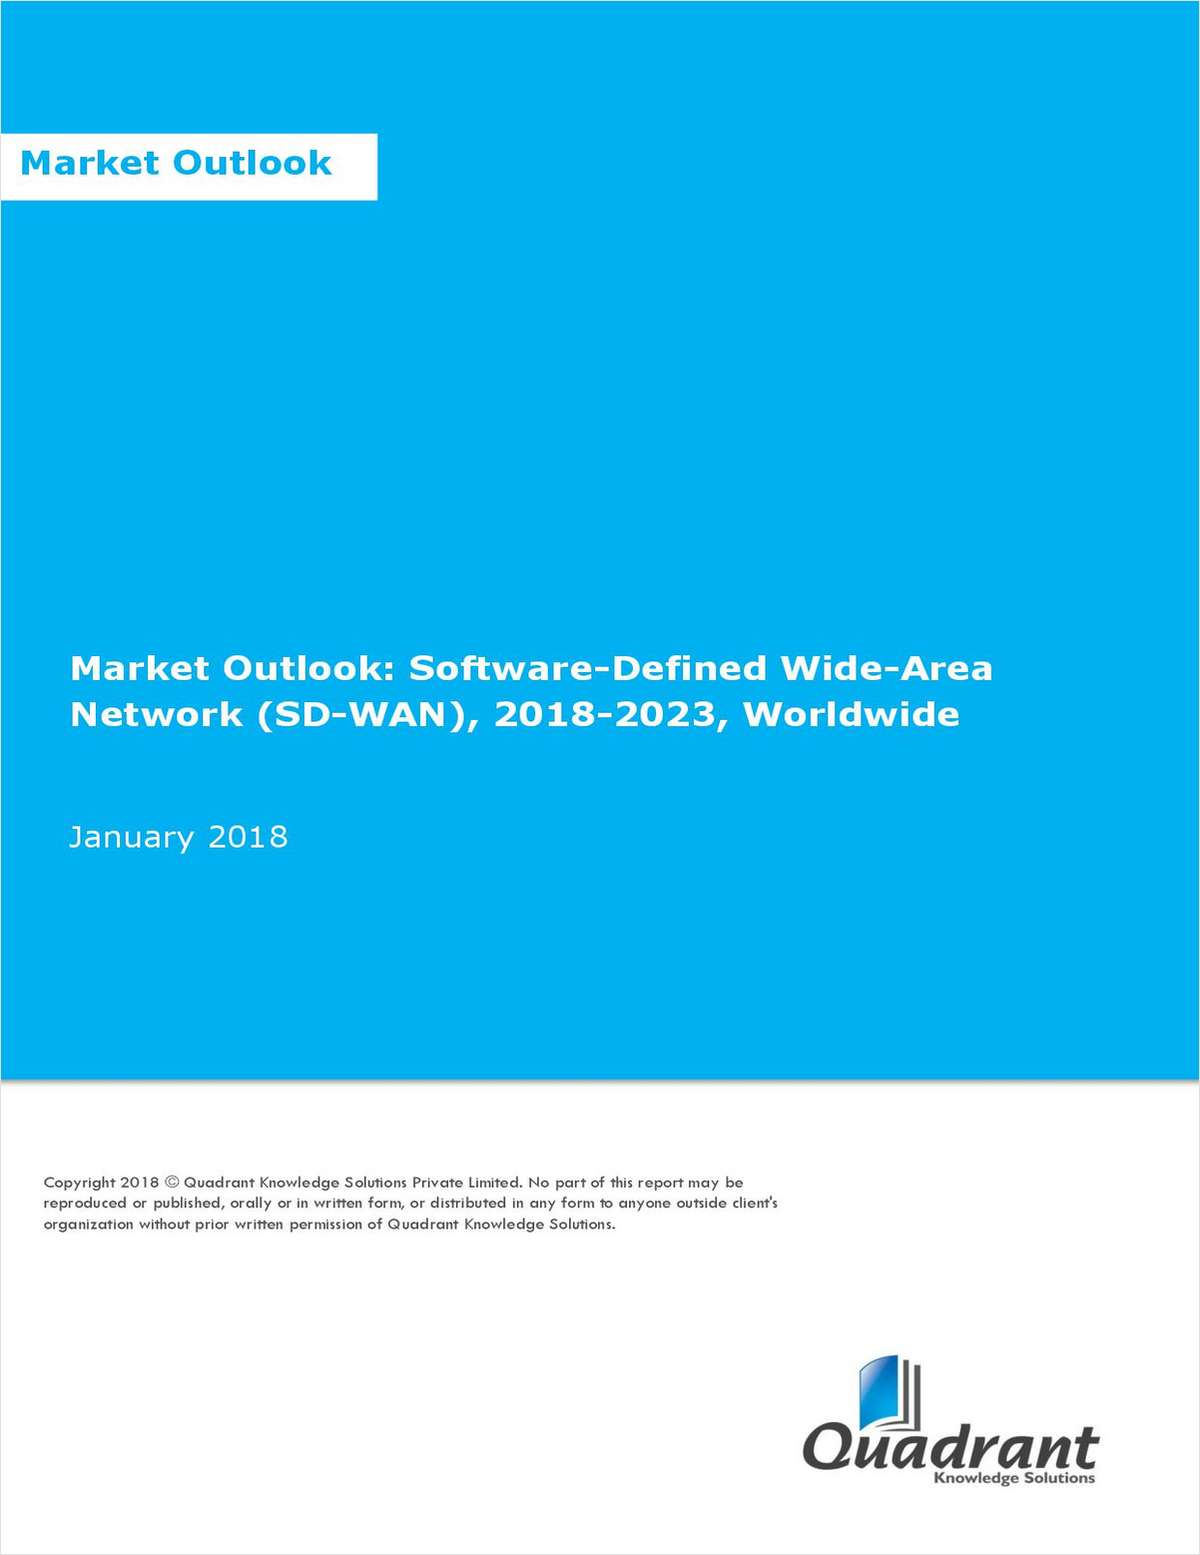 Market Outlook: Software-Defined Wide-Area Network